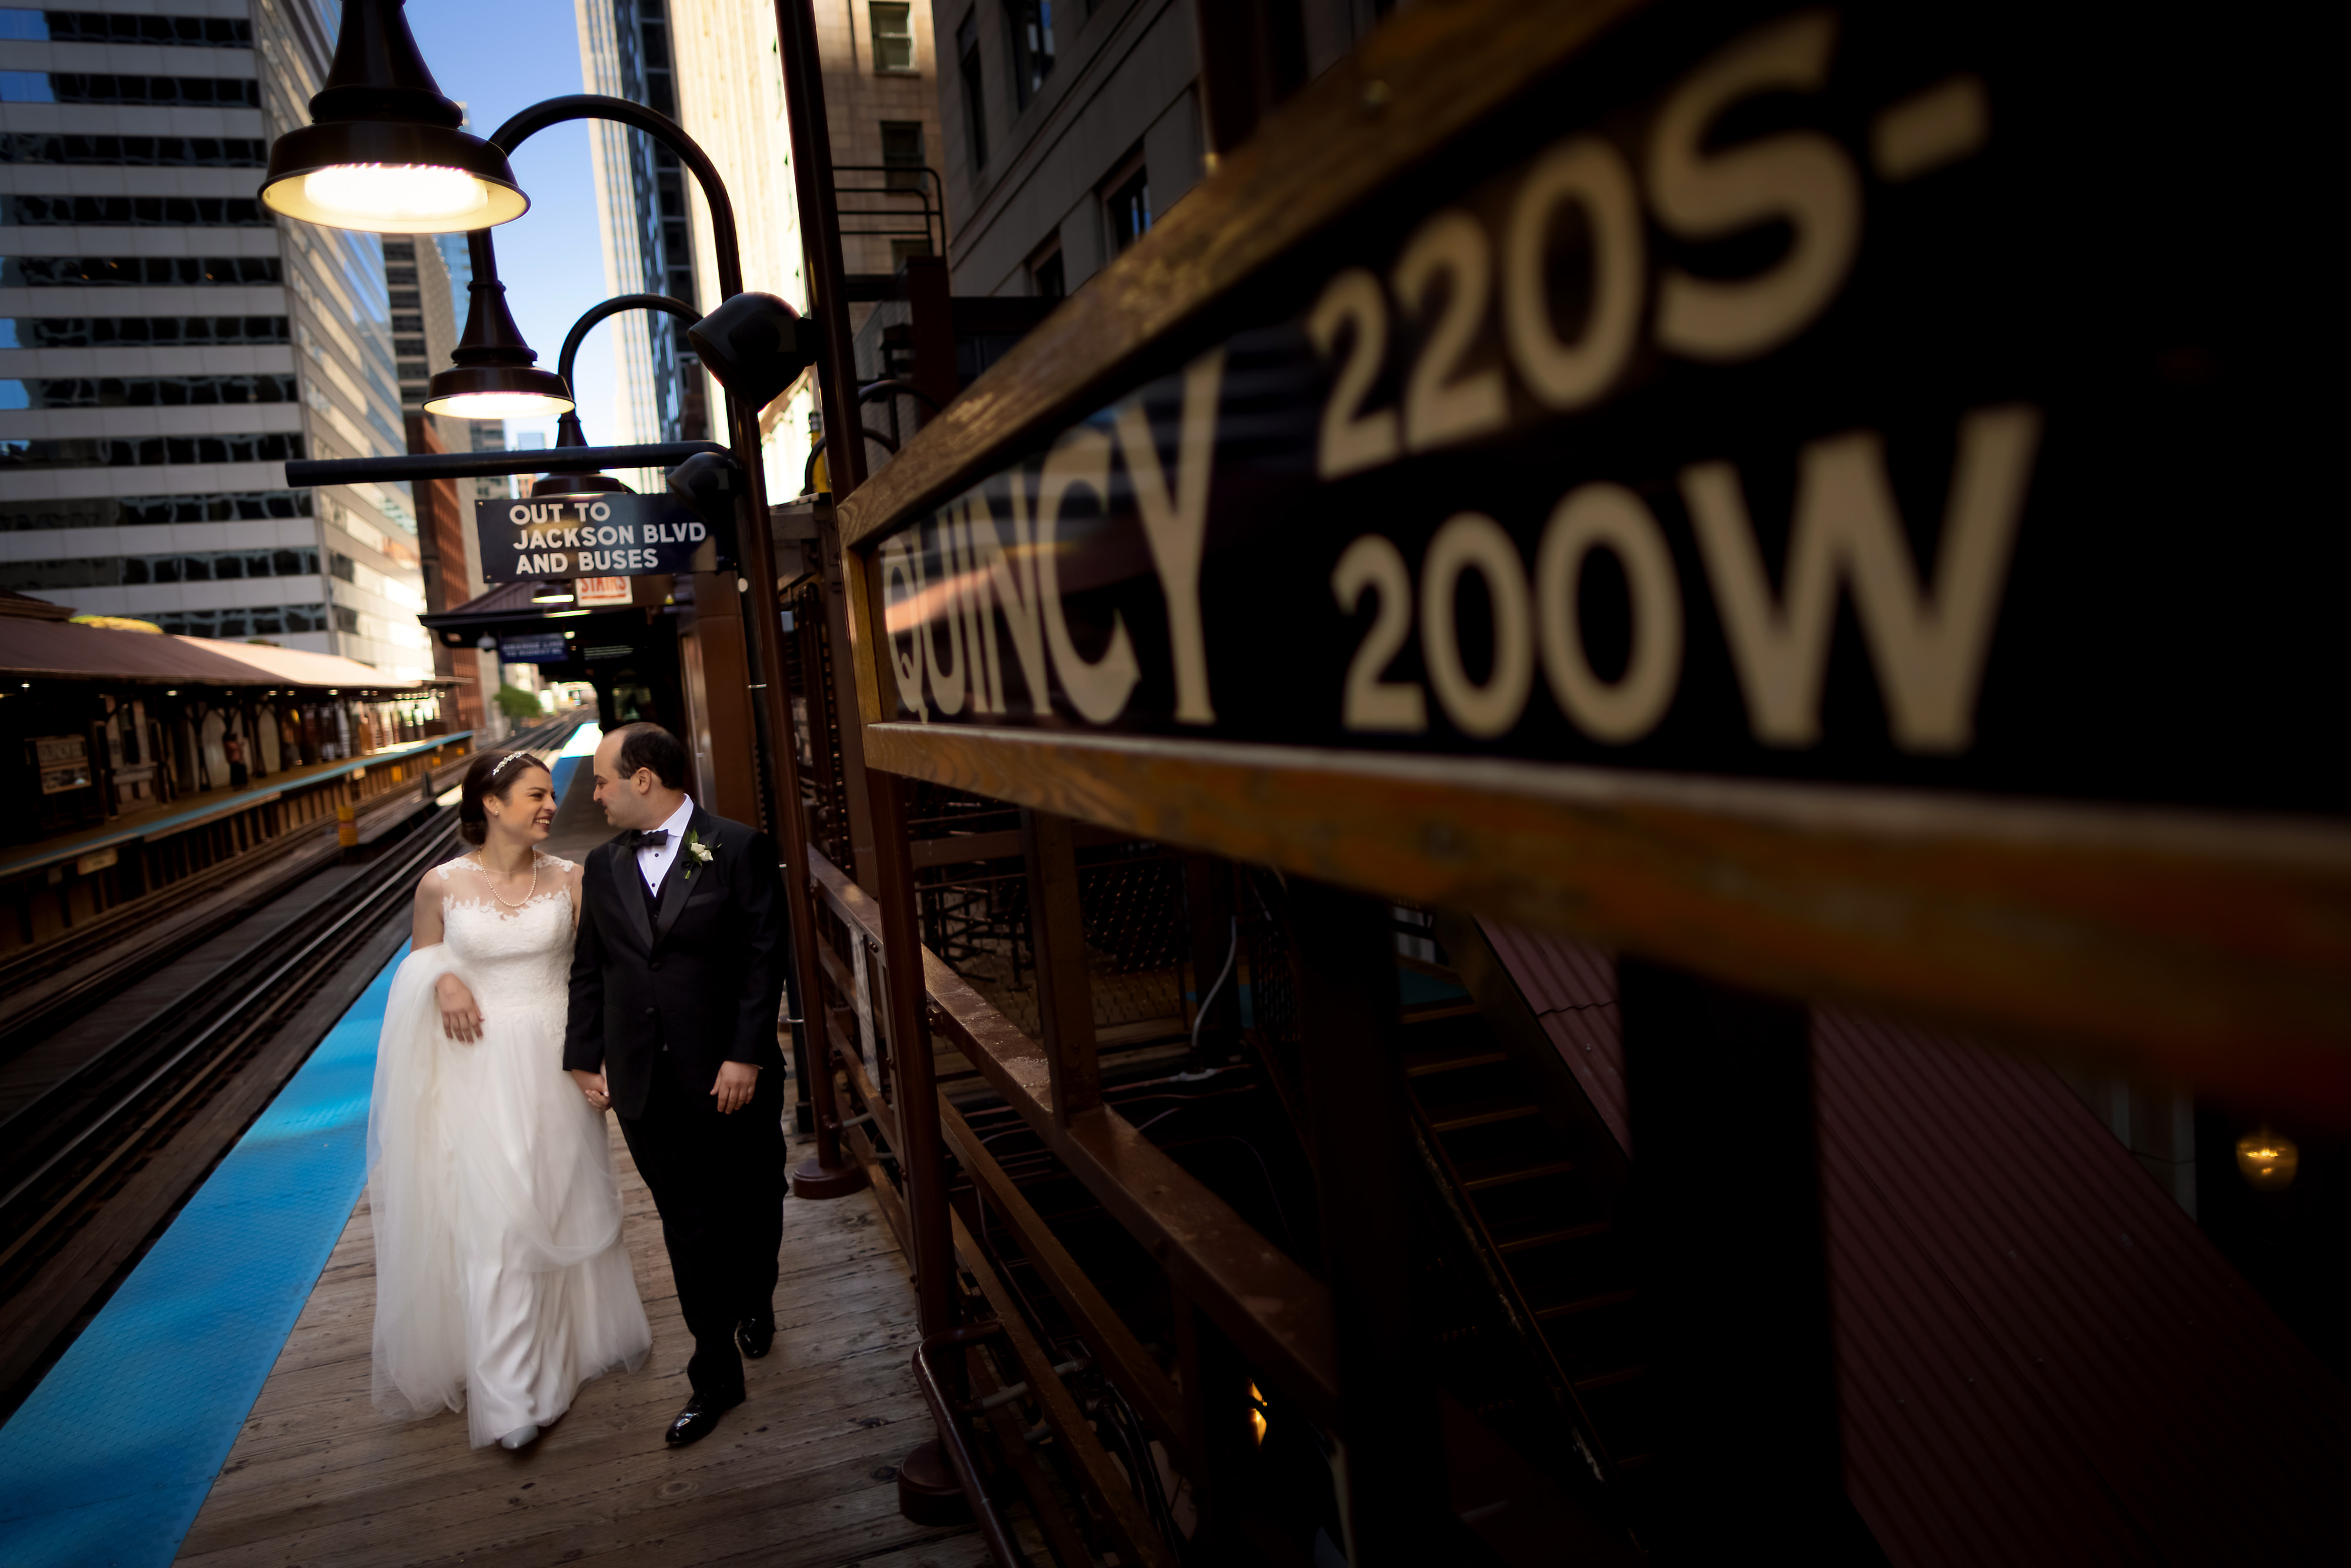 Bride and groom pose for wedding portraits at the Quincy Station El stop in Chicago